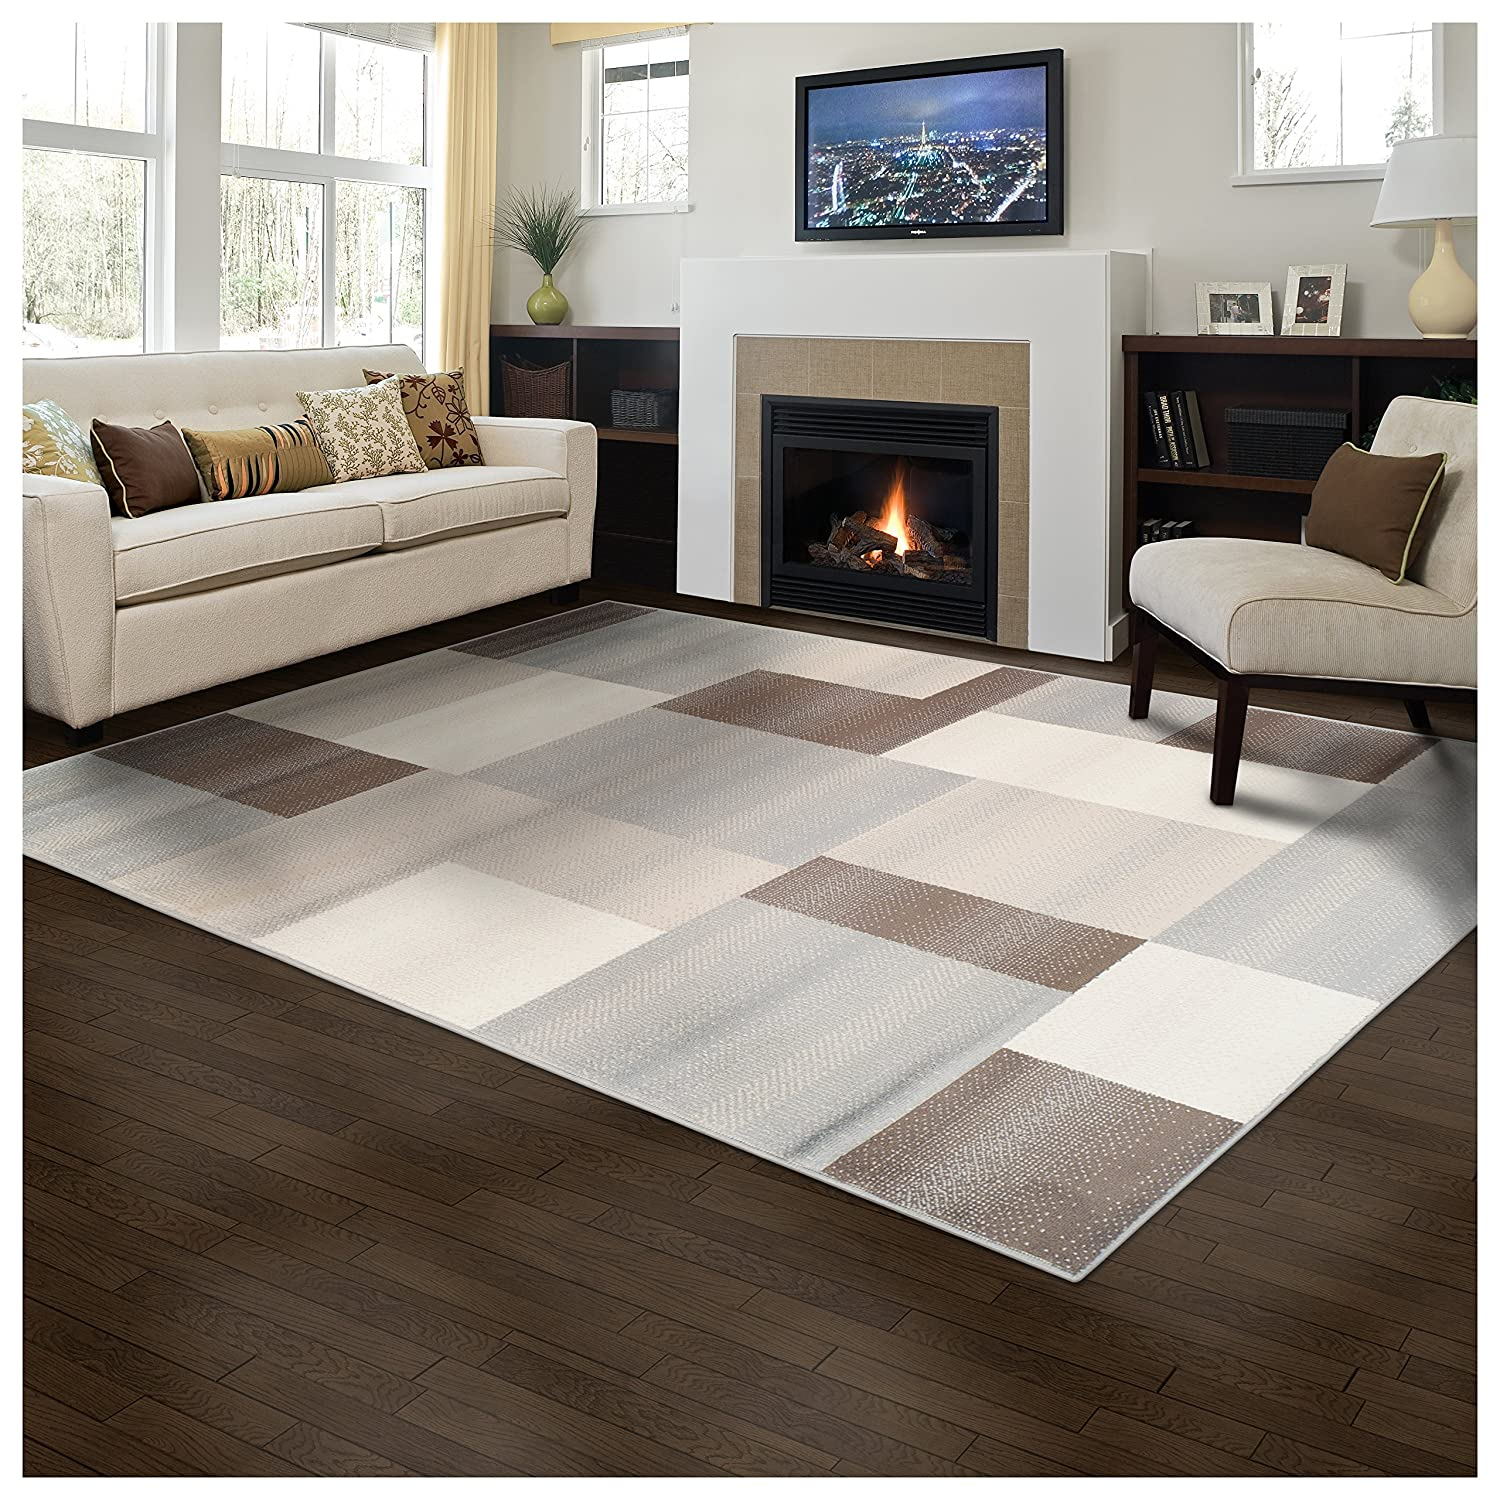 Superior Designer Clifton Collection Area Rug, 8mm Pile Height with Jute Backing